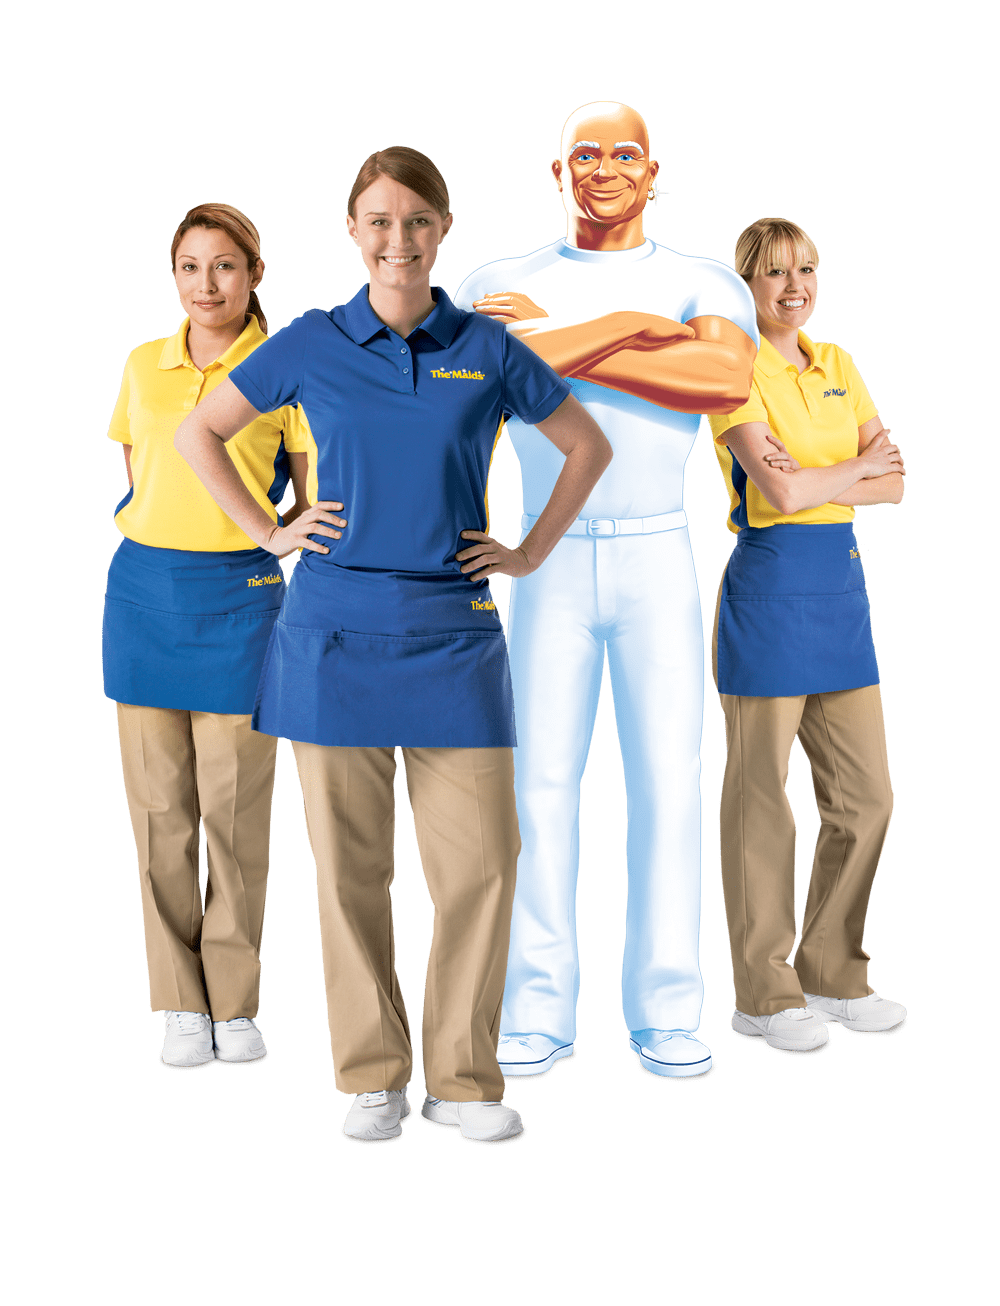 The Maids House Cleaning - The Maids serving Northern Palm Beach County and the Western Communities Home Cleaning